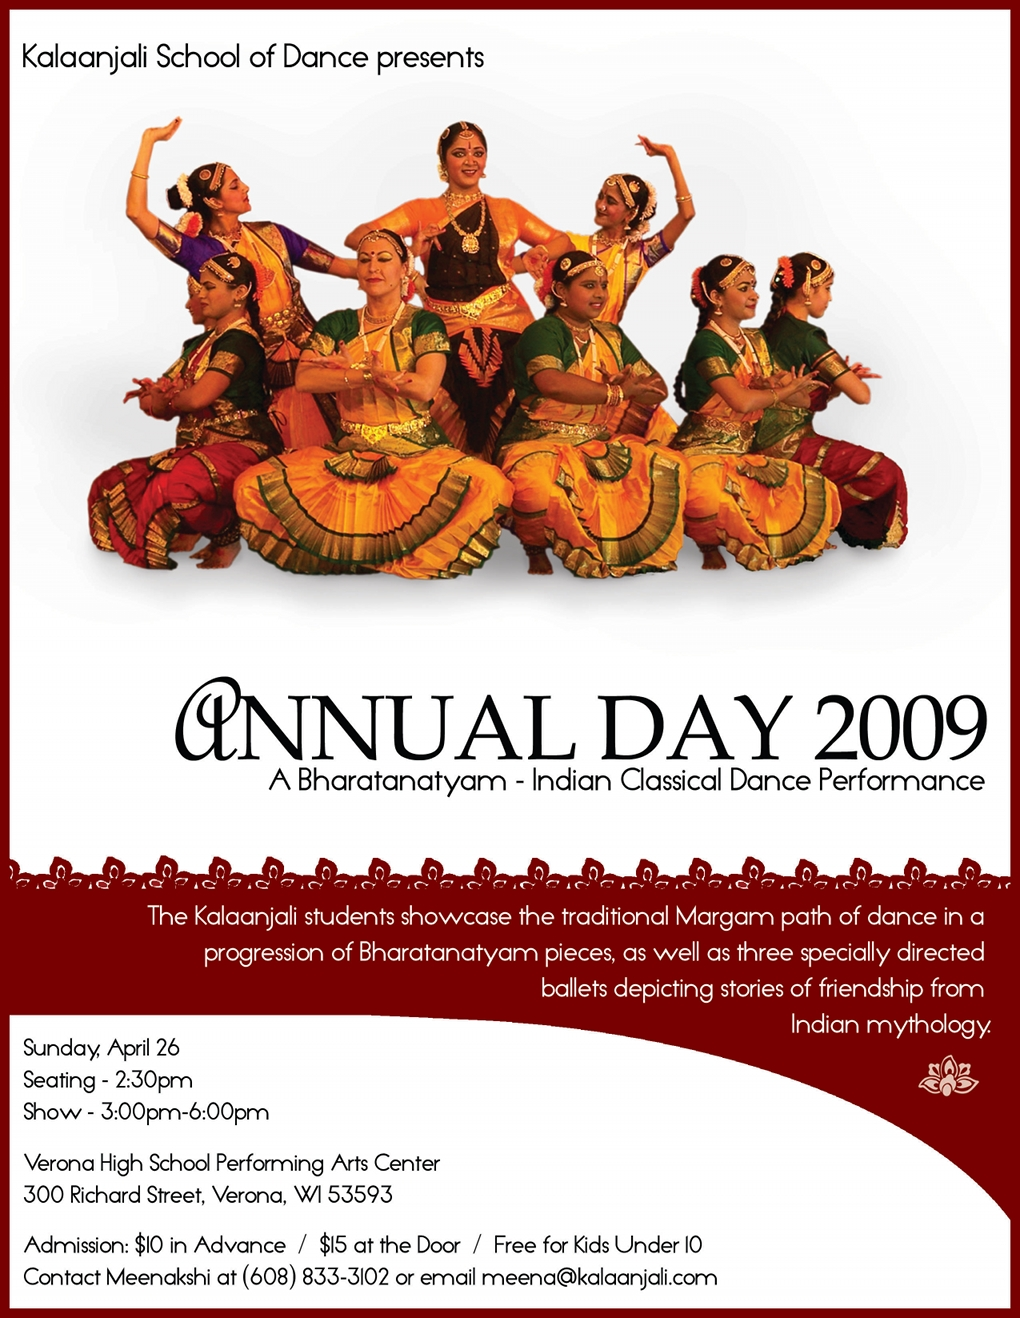 2009 kalaanjali annual day stopboris Choice Image